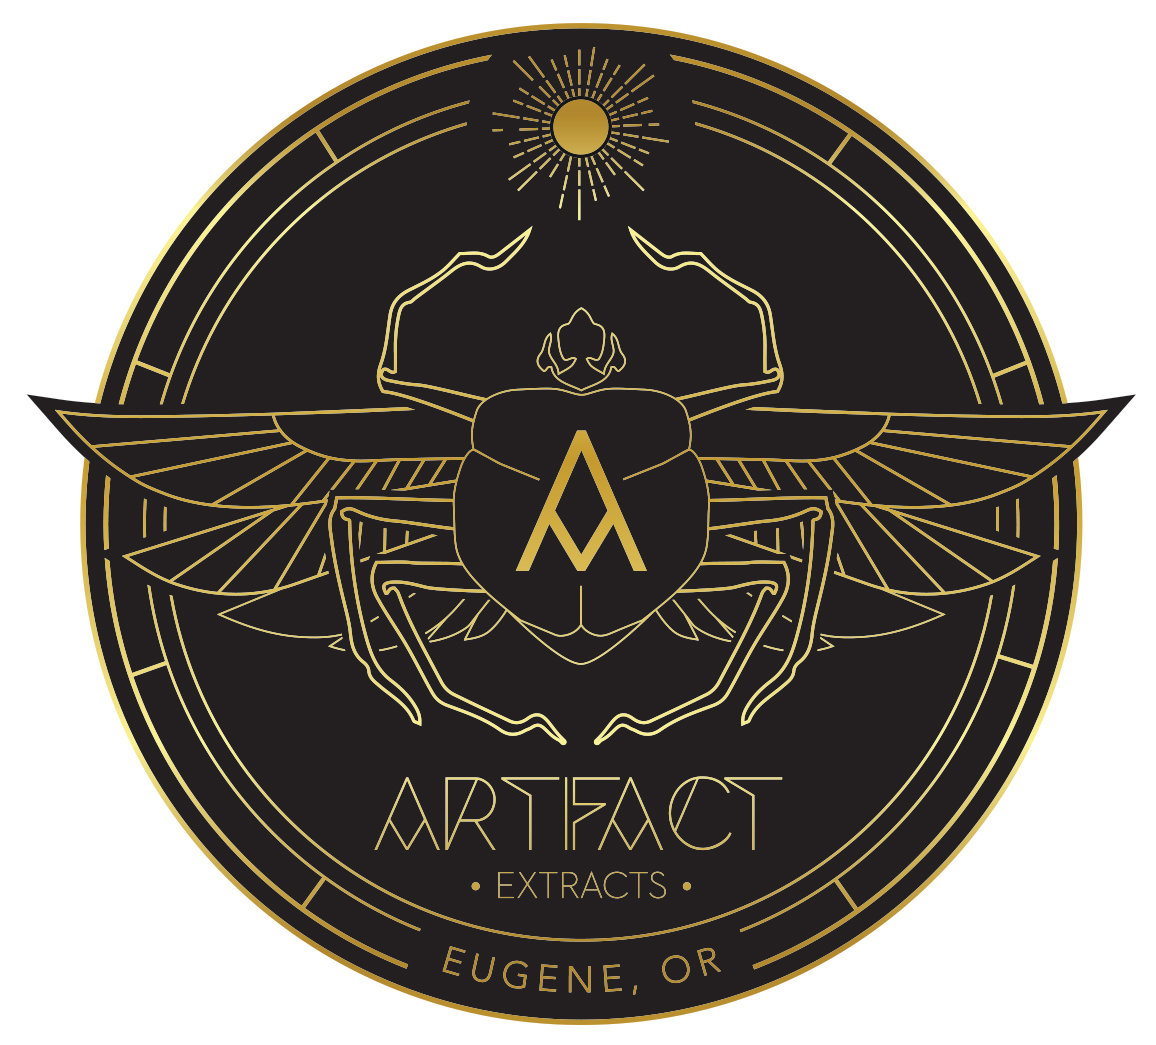 AbstractExtracts_LOGO_round_GOLD.jpg